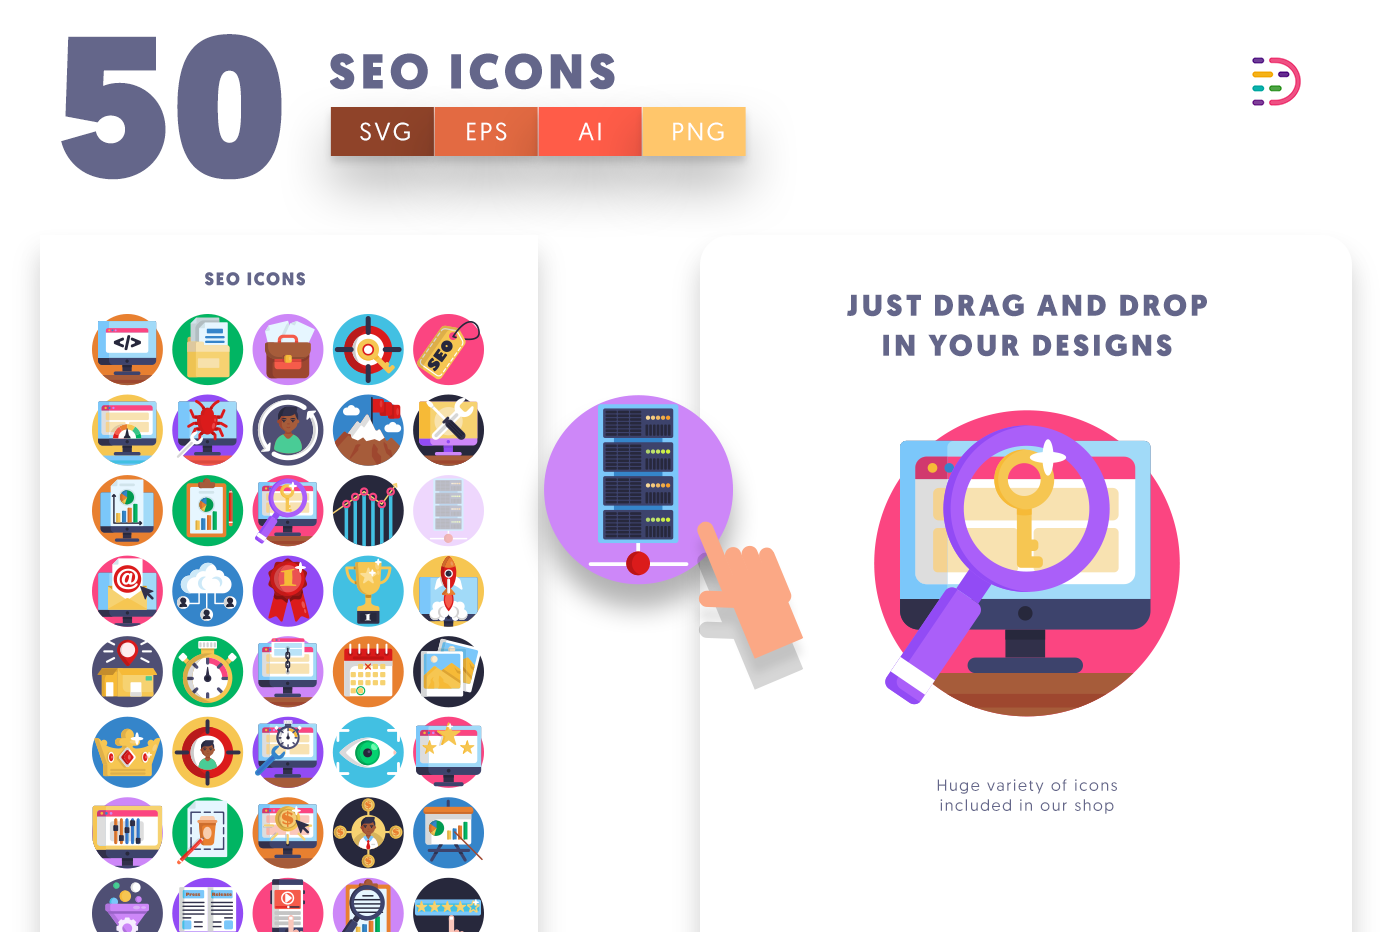 Drag and drop vector 50 SEO Icons